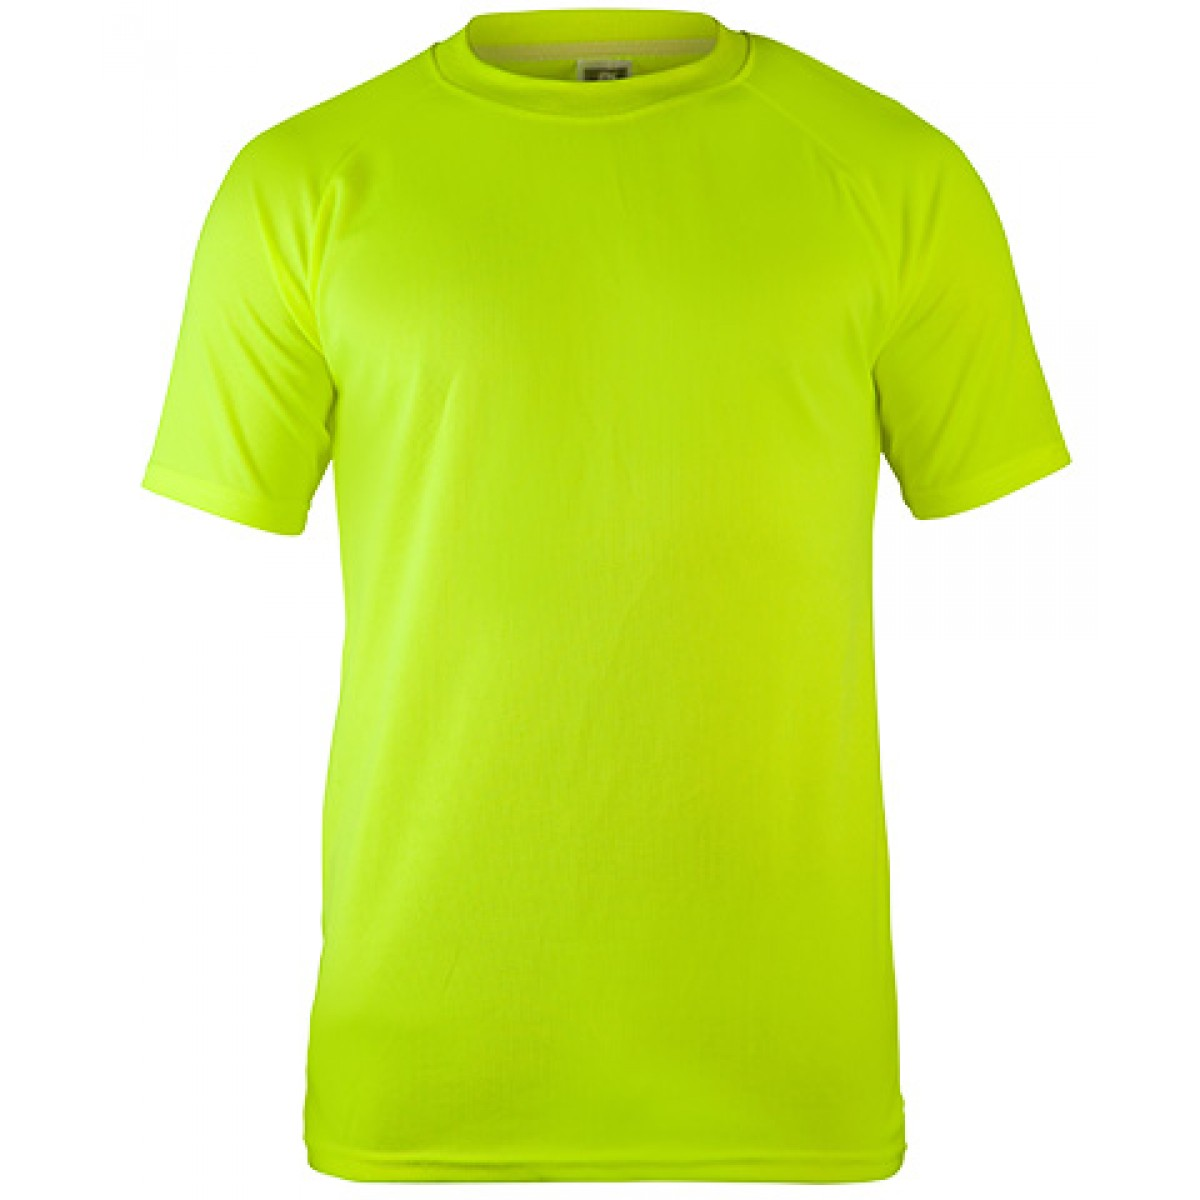 Performance T-shirt-Safety Green-L